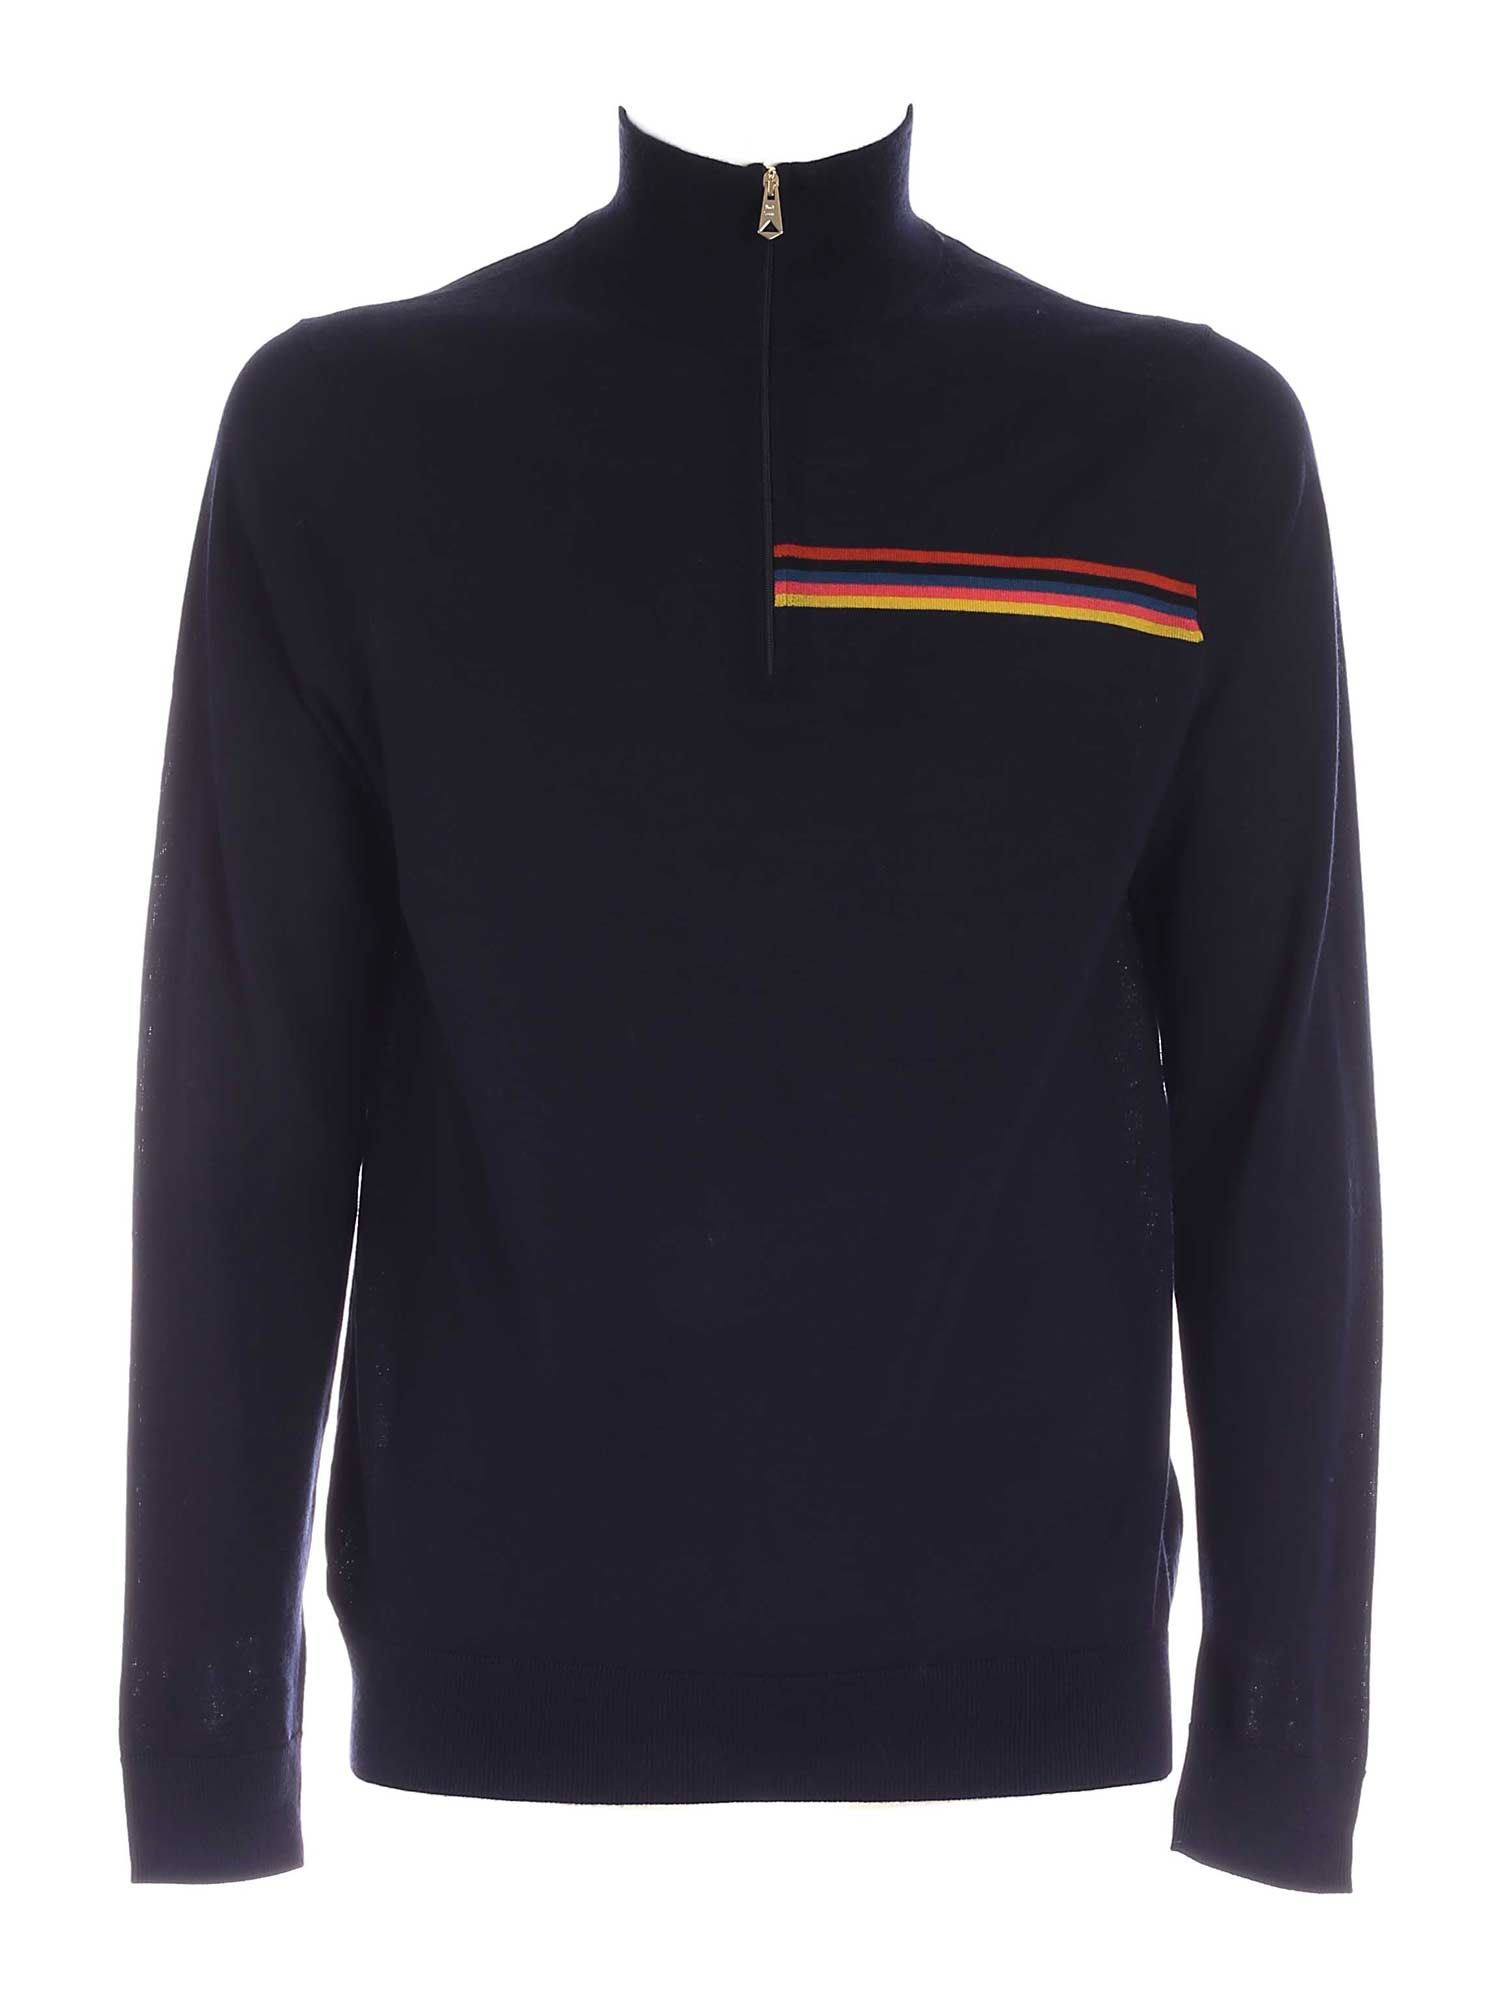 Paul Smith ZIP ON THE NECK PULLOVER IN DARK BLUE